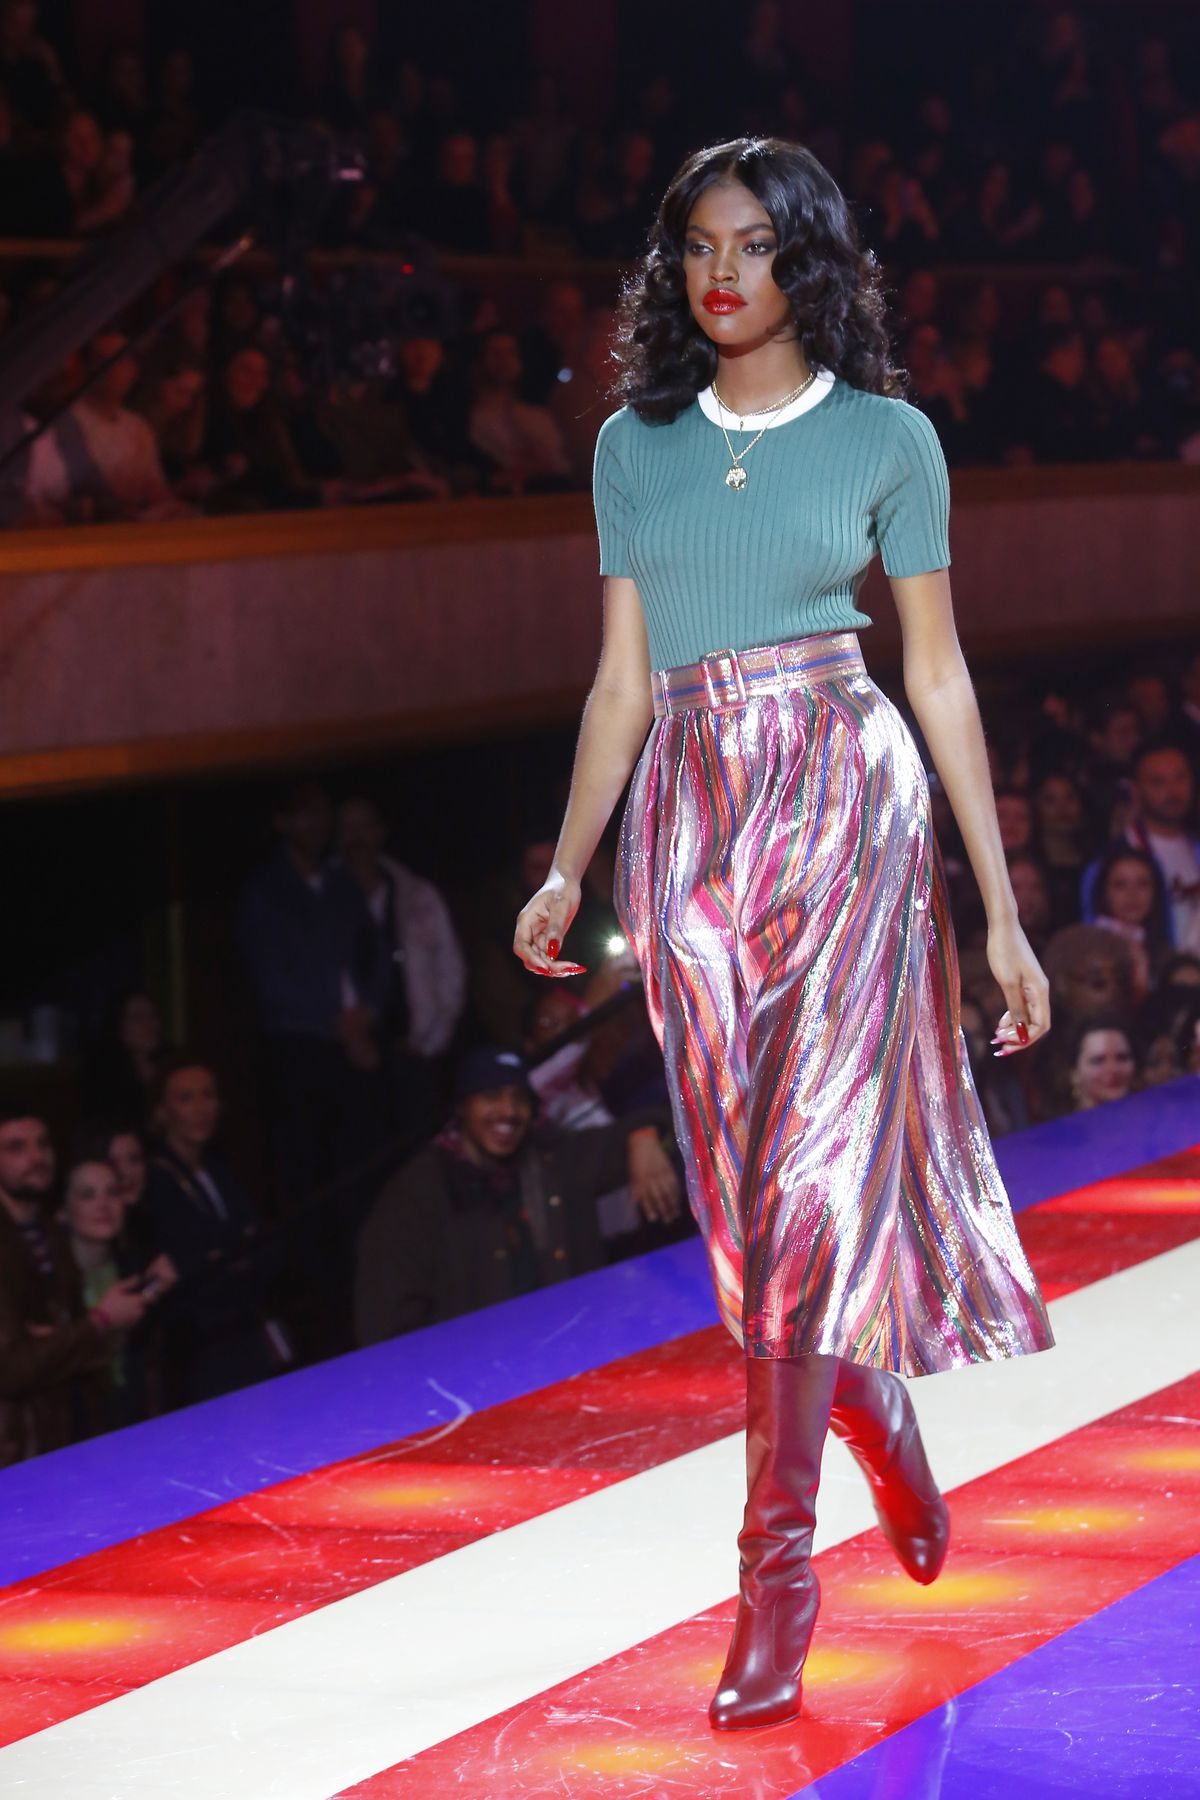 4610f698 For Hilfiger's disco-inspired show, the Champs-Elysees Theatre flashed with  Pac-Man and Space Invaders arcade games while excited guests, including  British ...